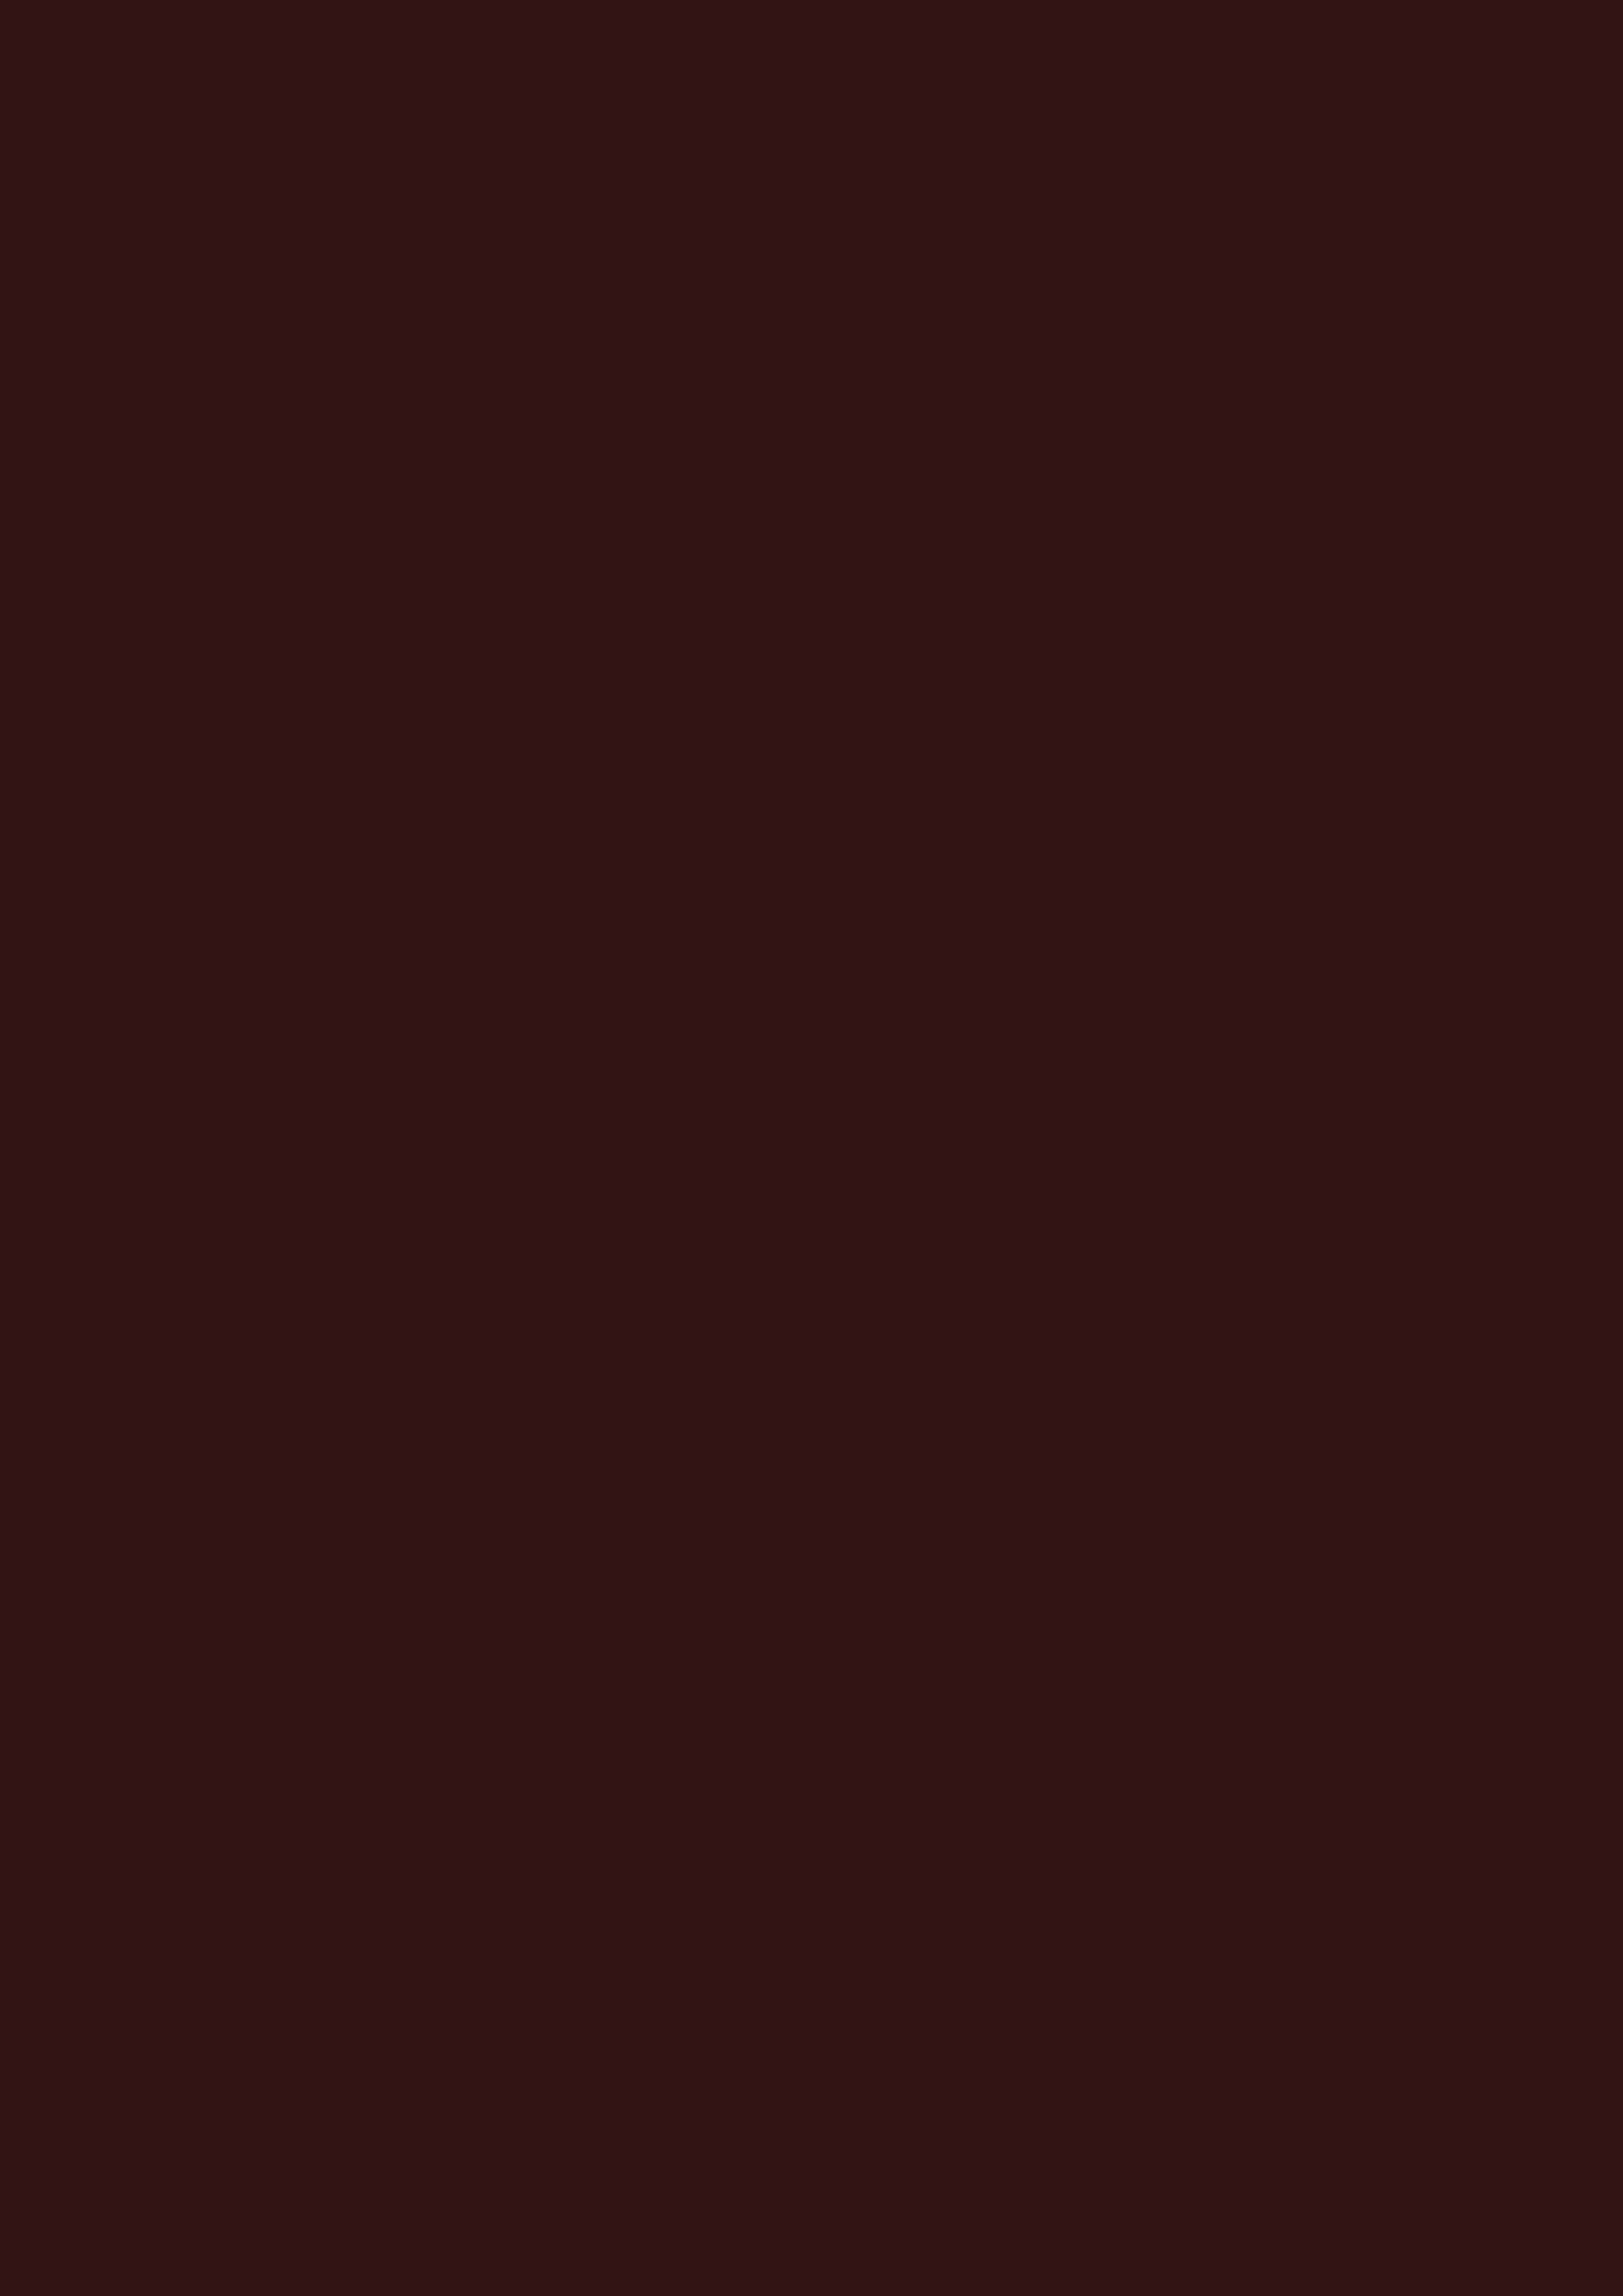 2480x3508 Seal Brown Solid Color Background